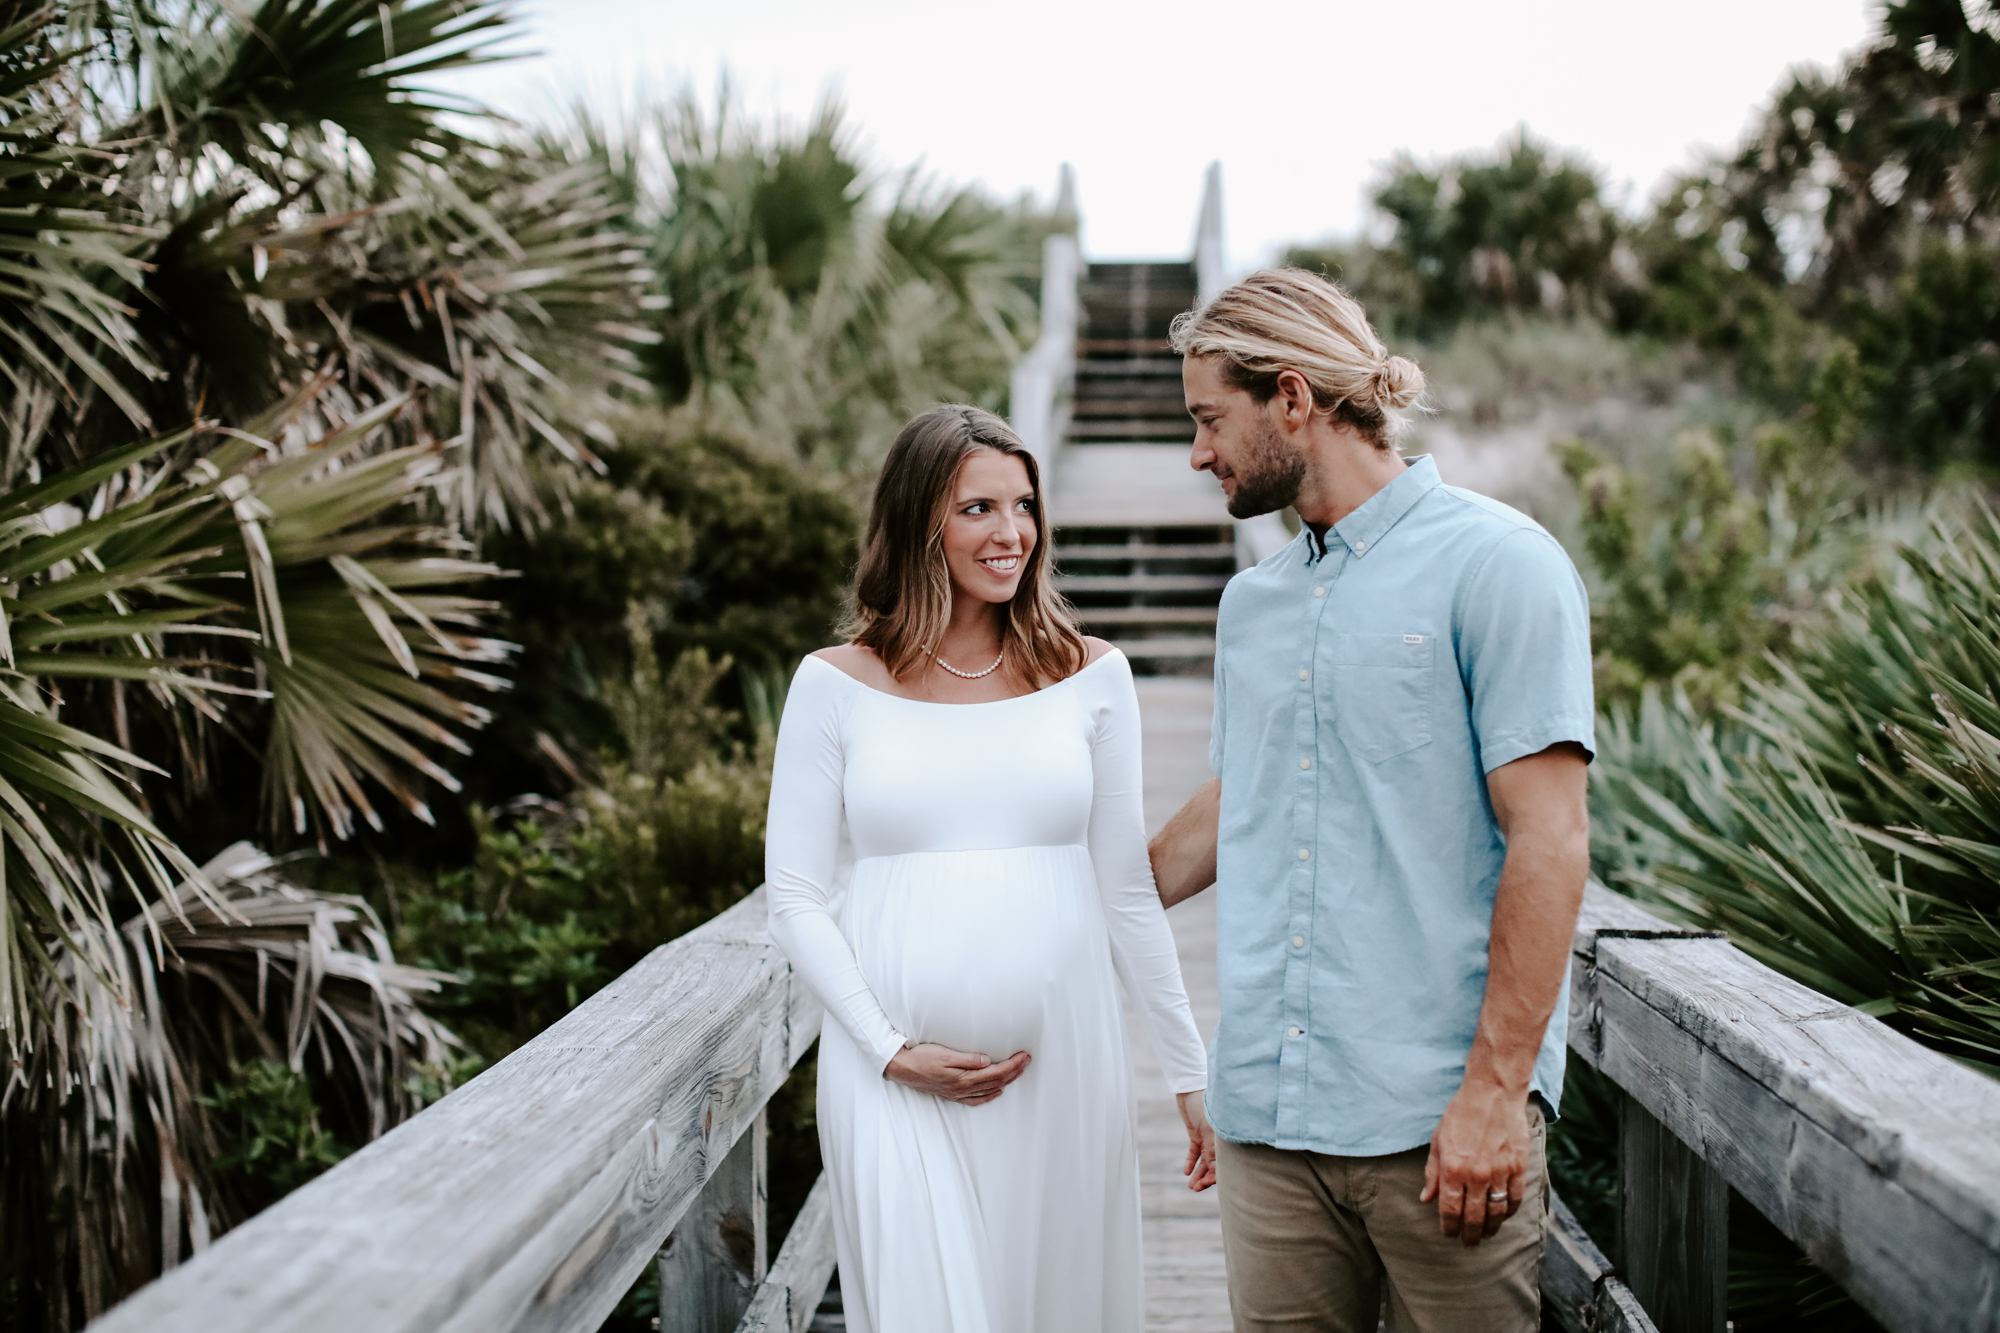 new-smyrna-beach-maternity-photographer.jpg